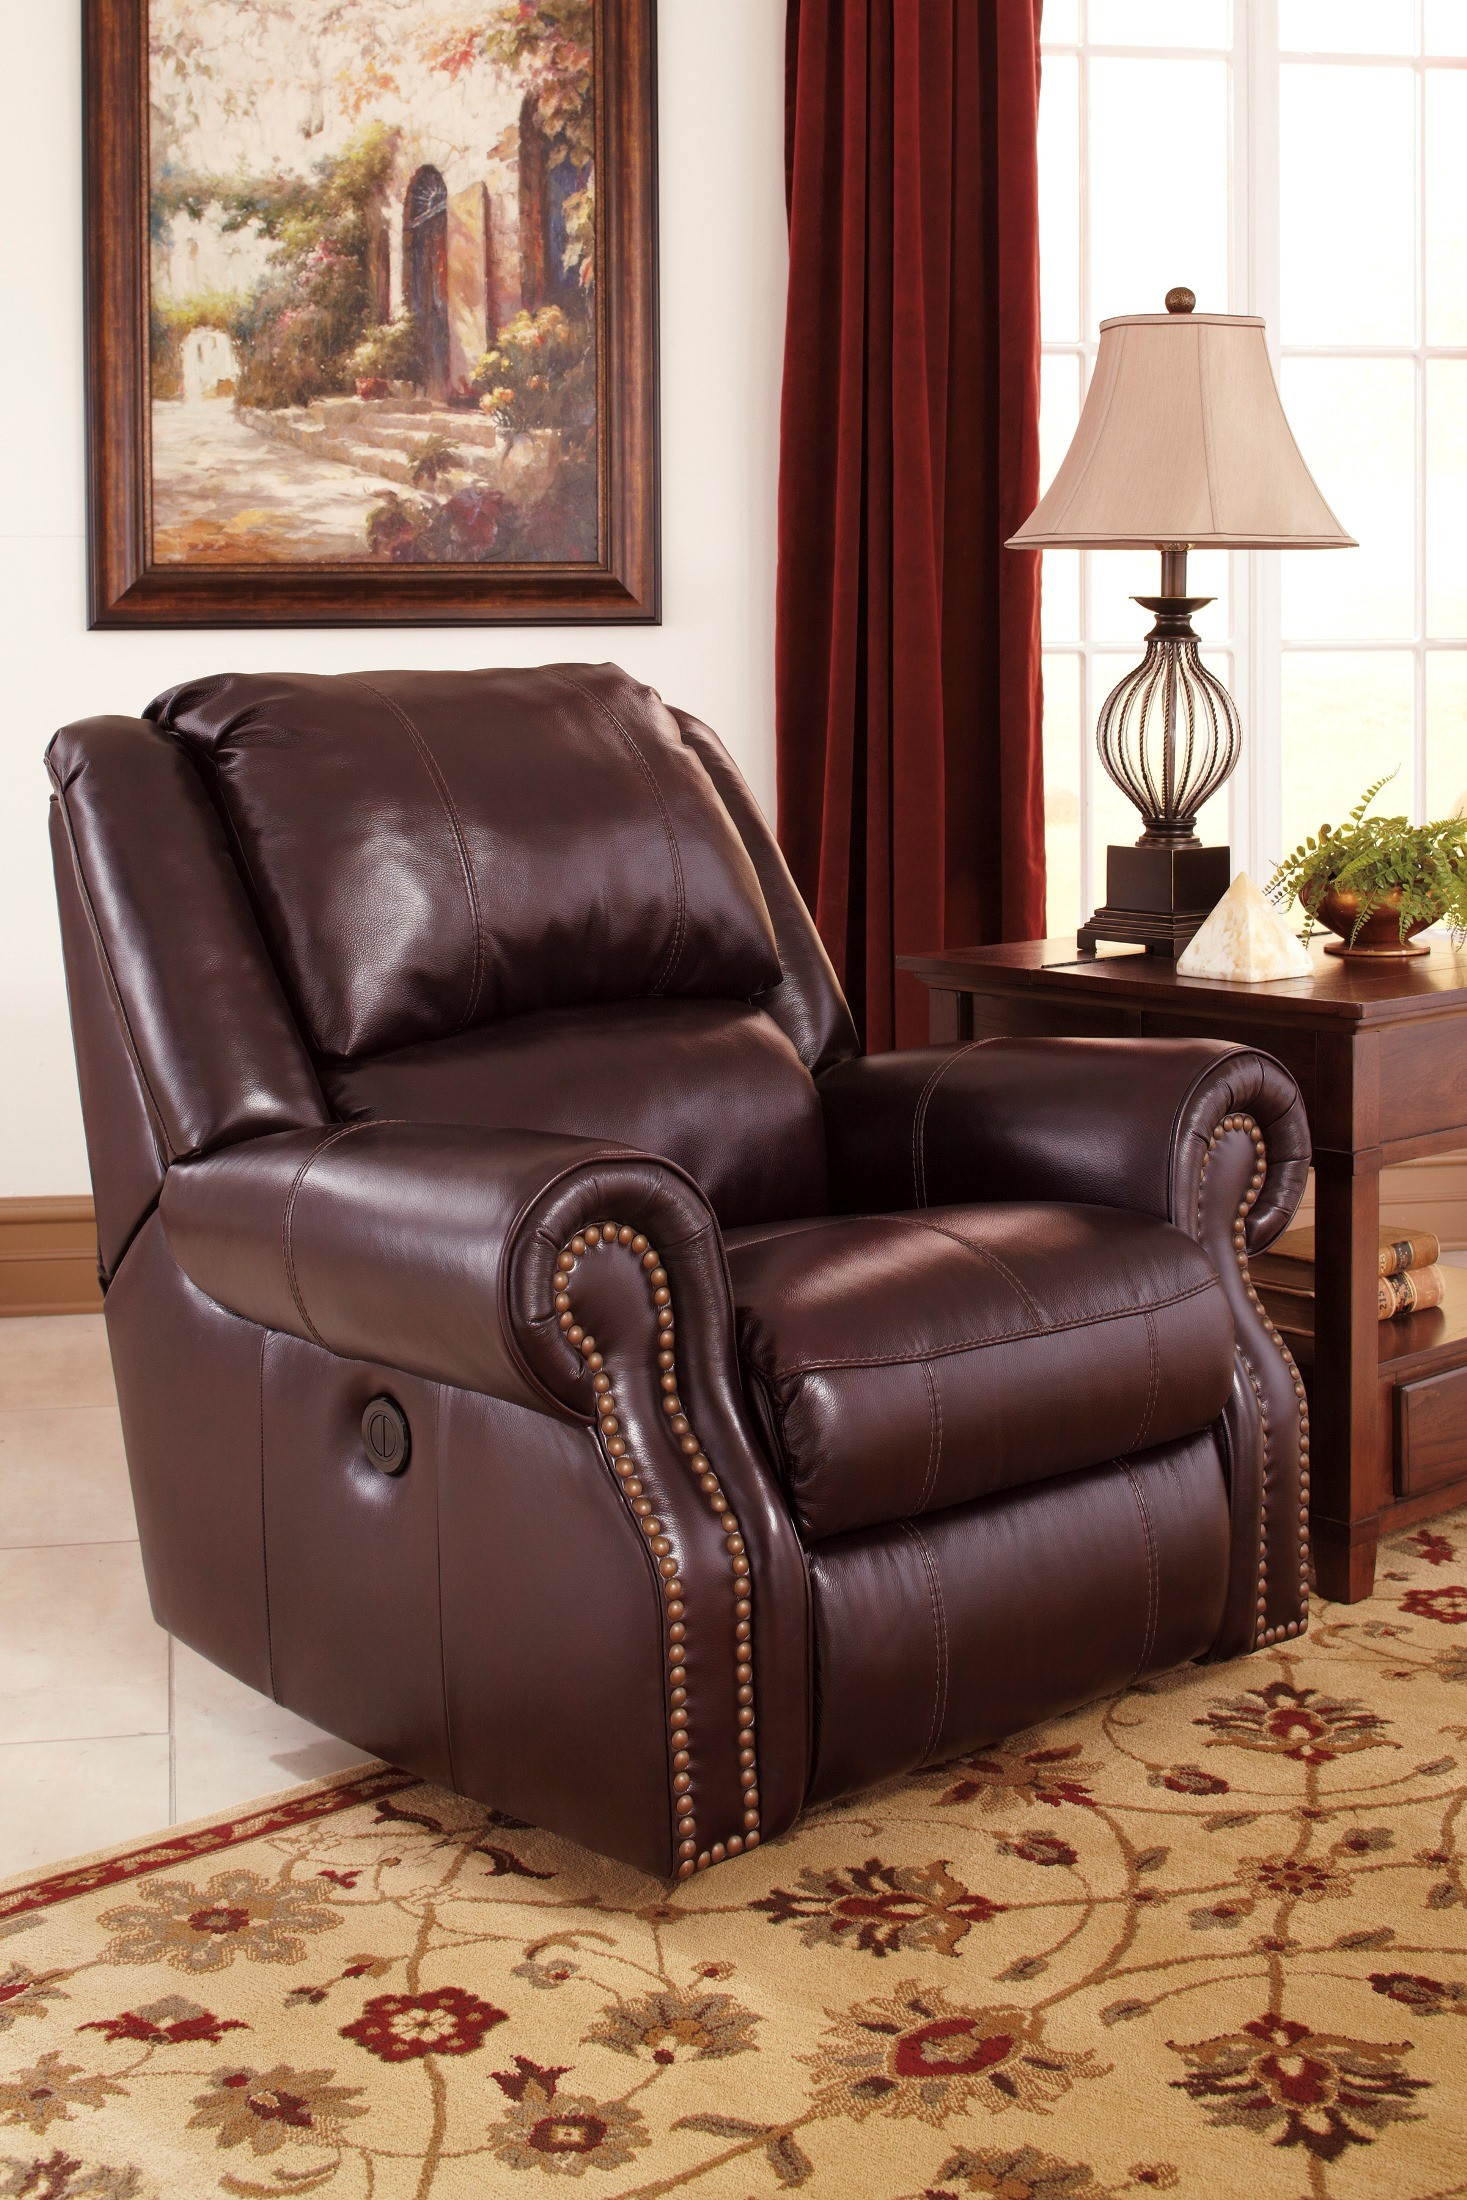 Walworth Blackcherry Power Reclining Living Room Set from Ashley